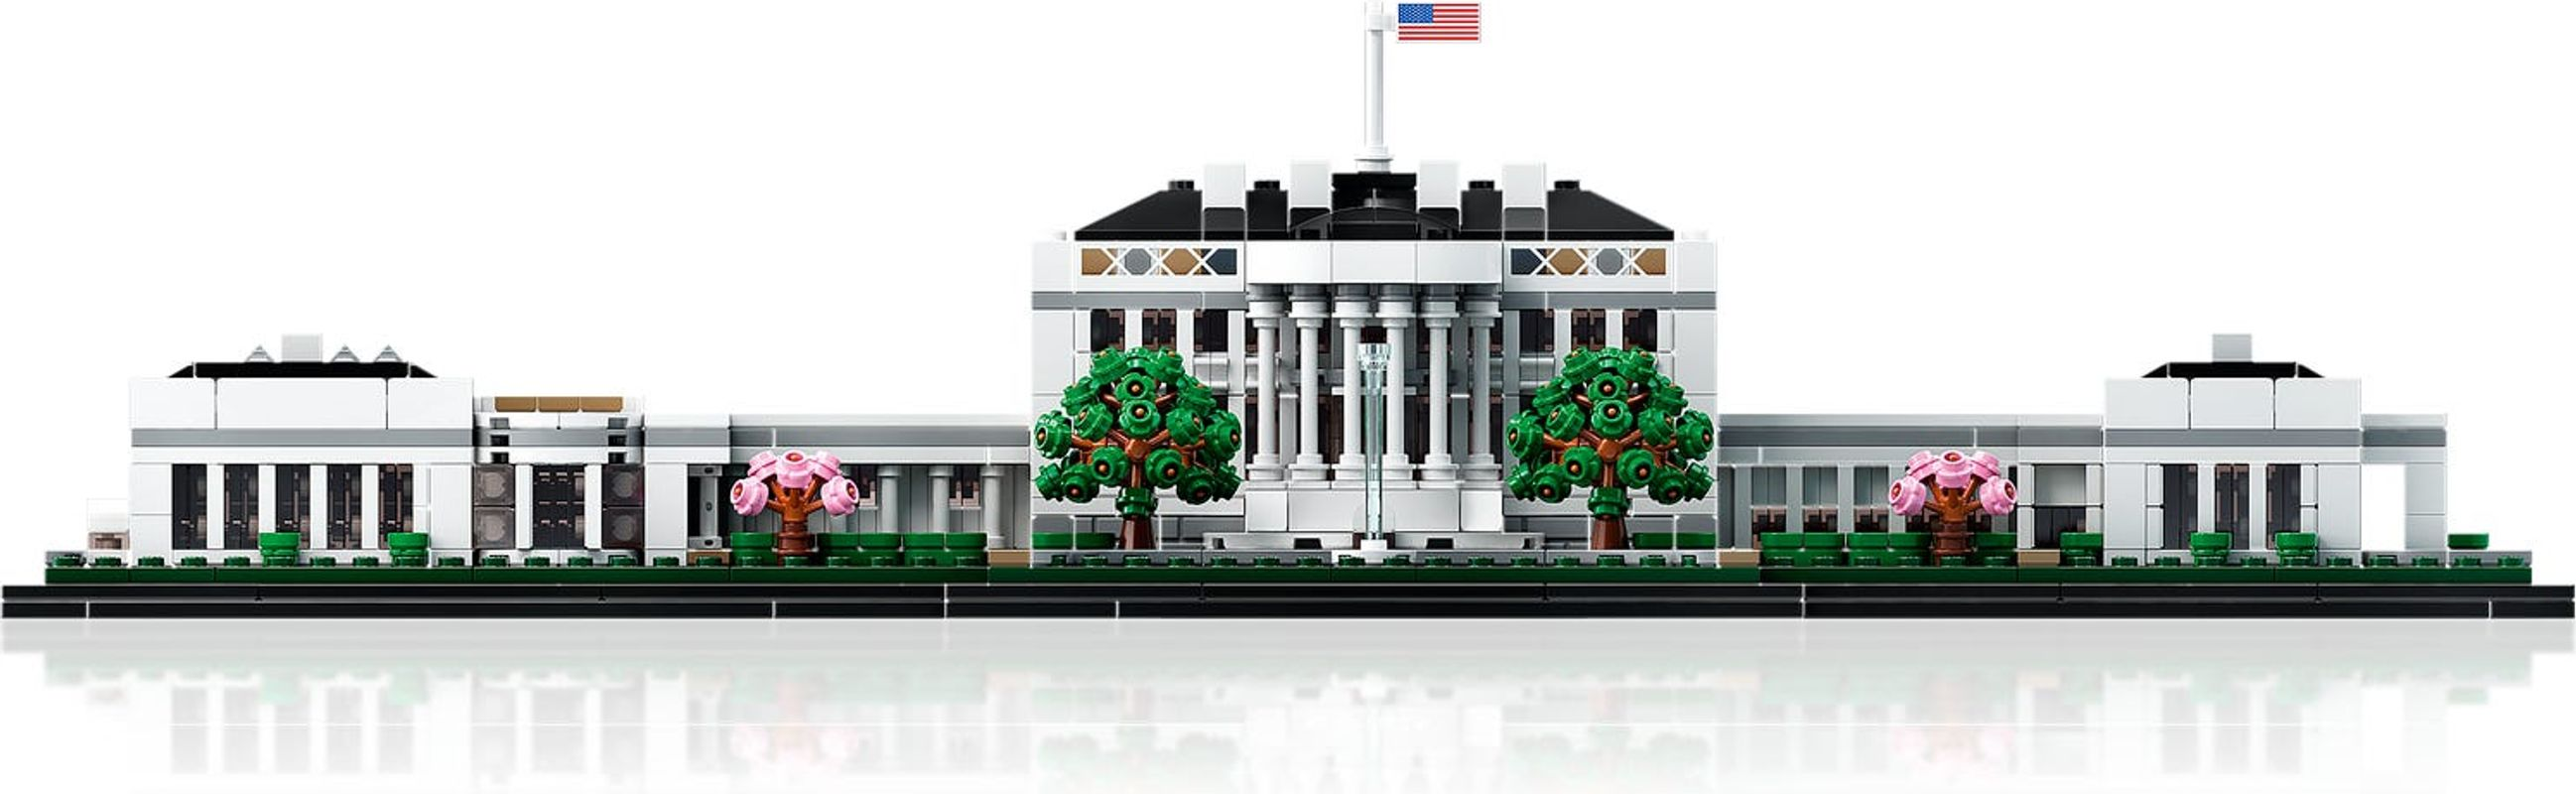 The White House components